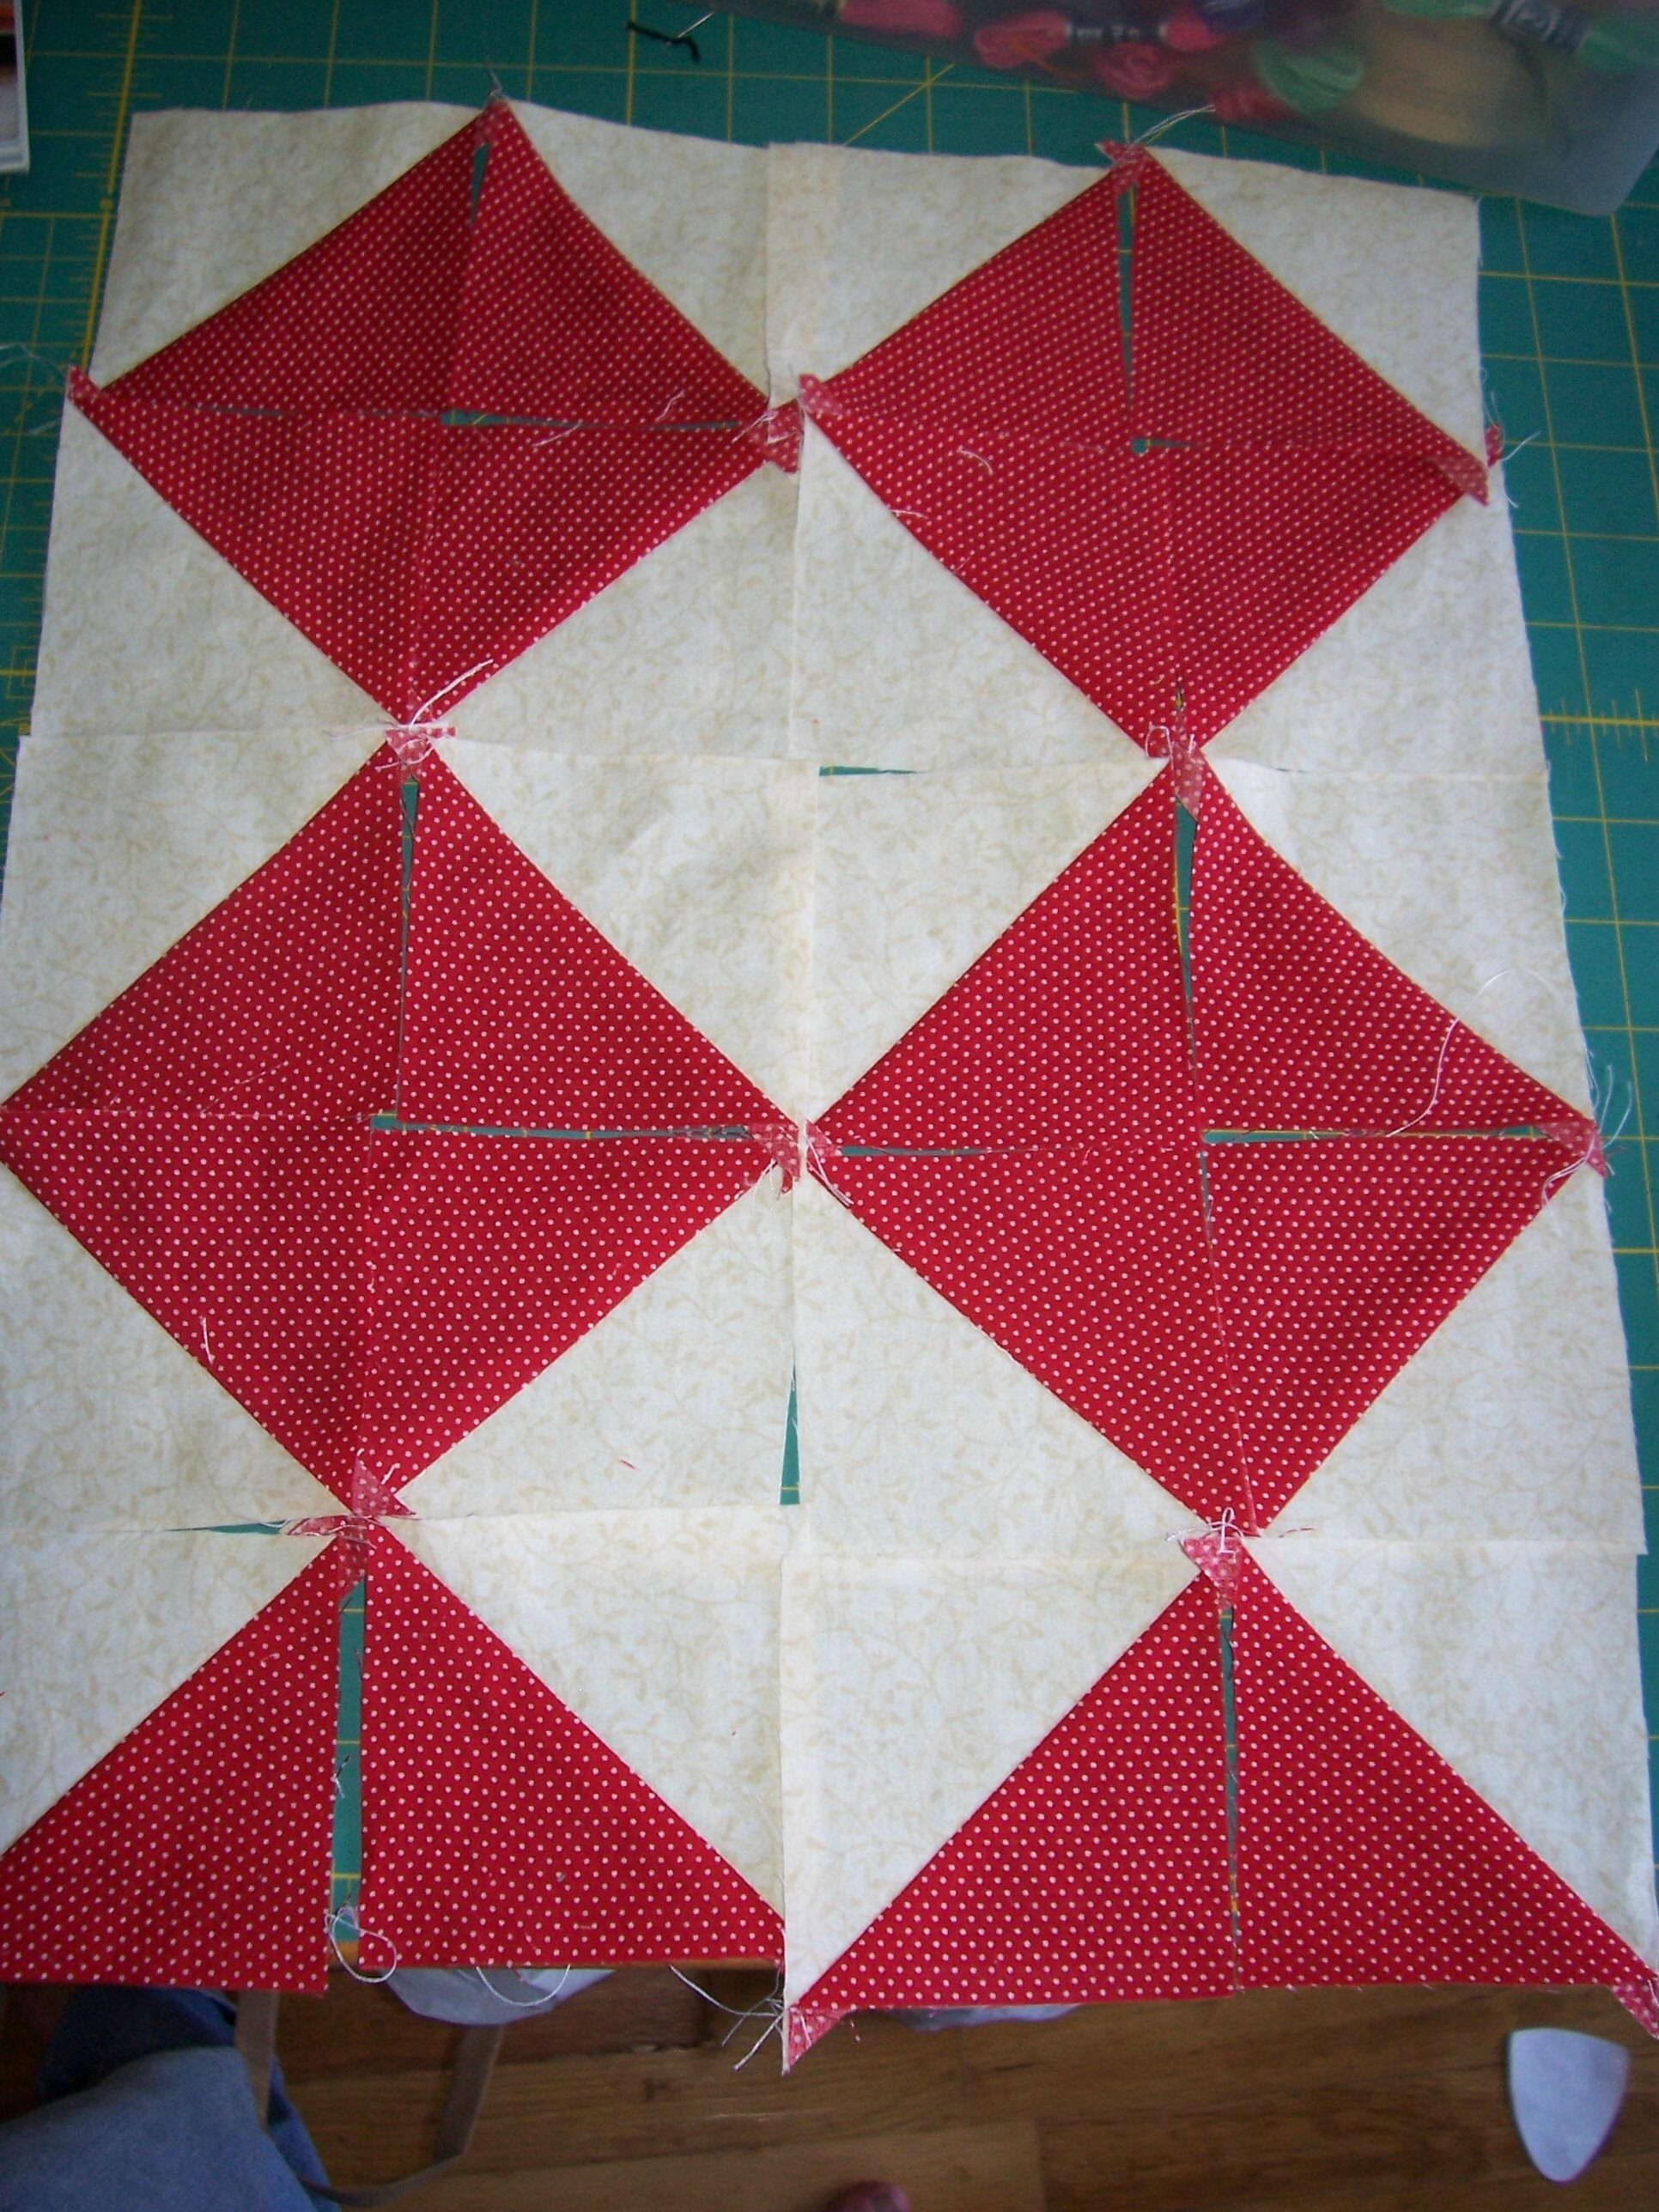 Picture of Quilt Construction